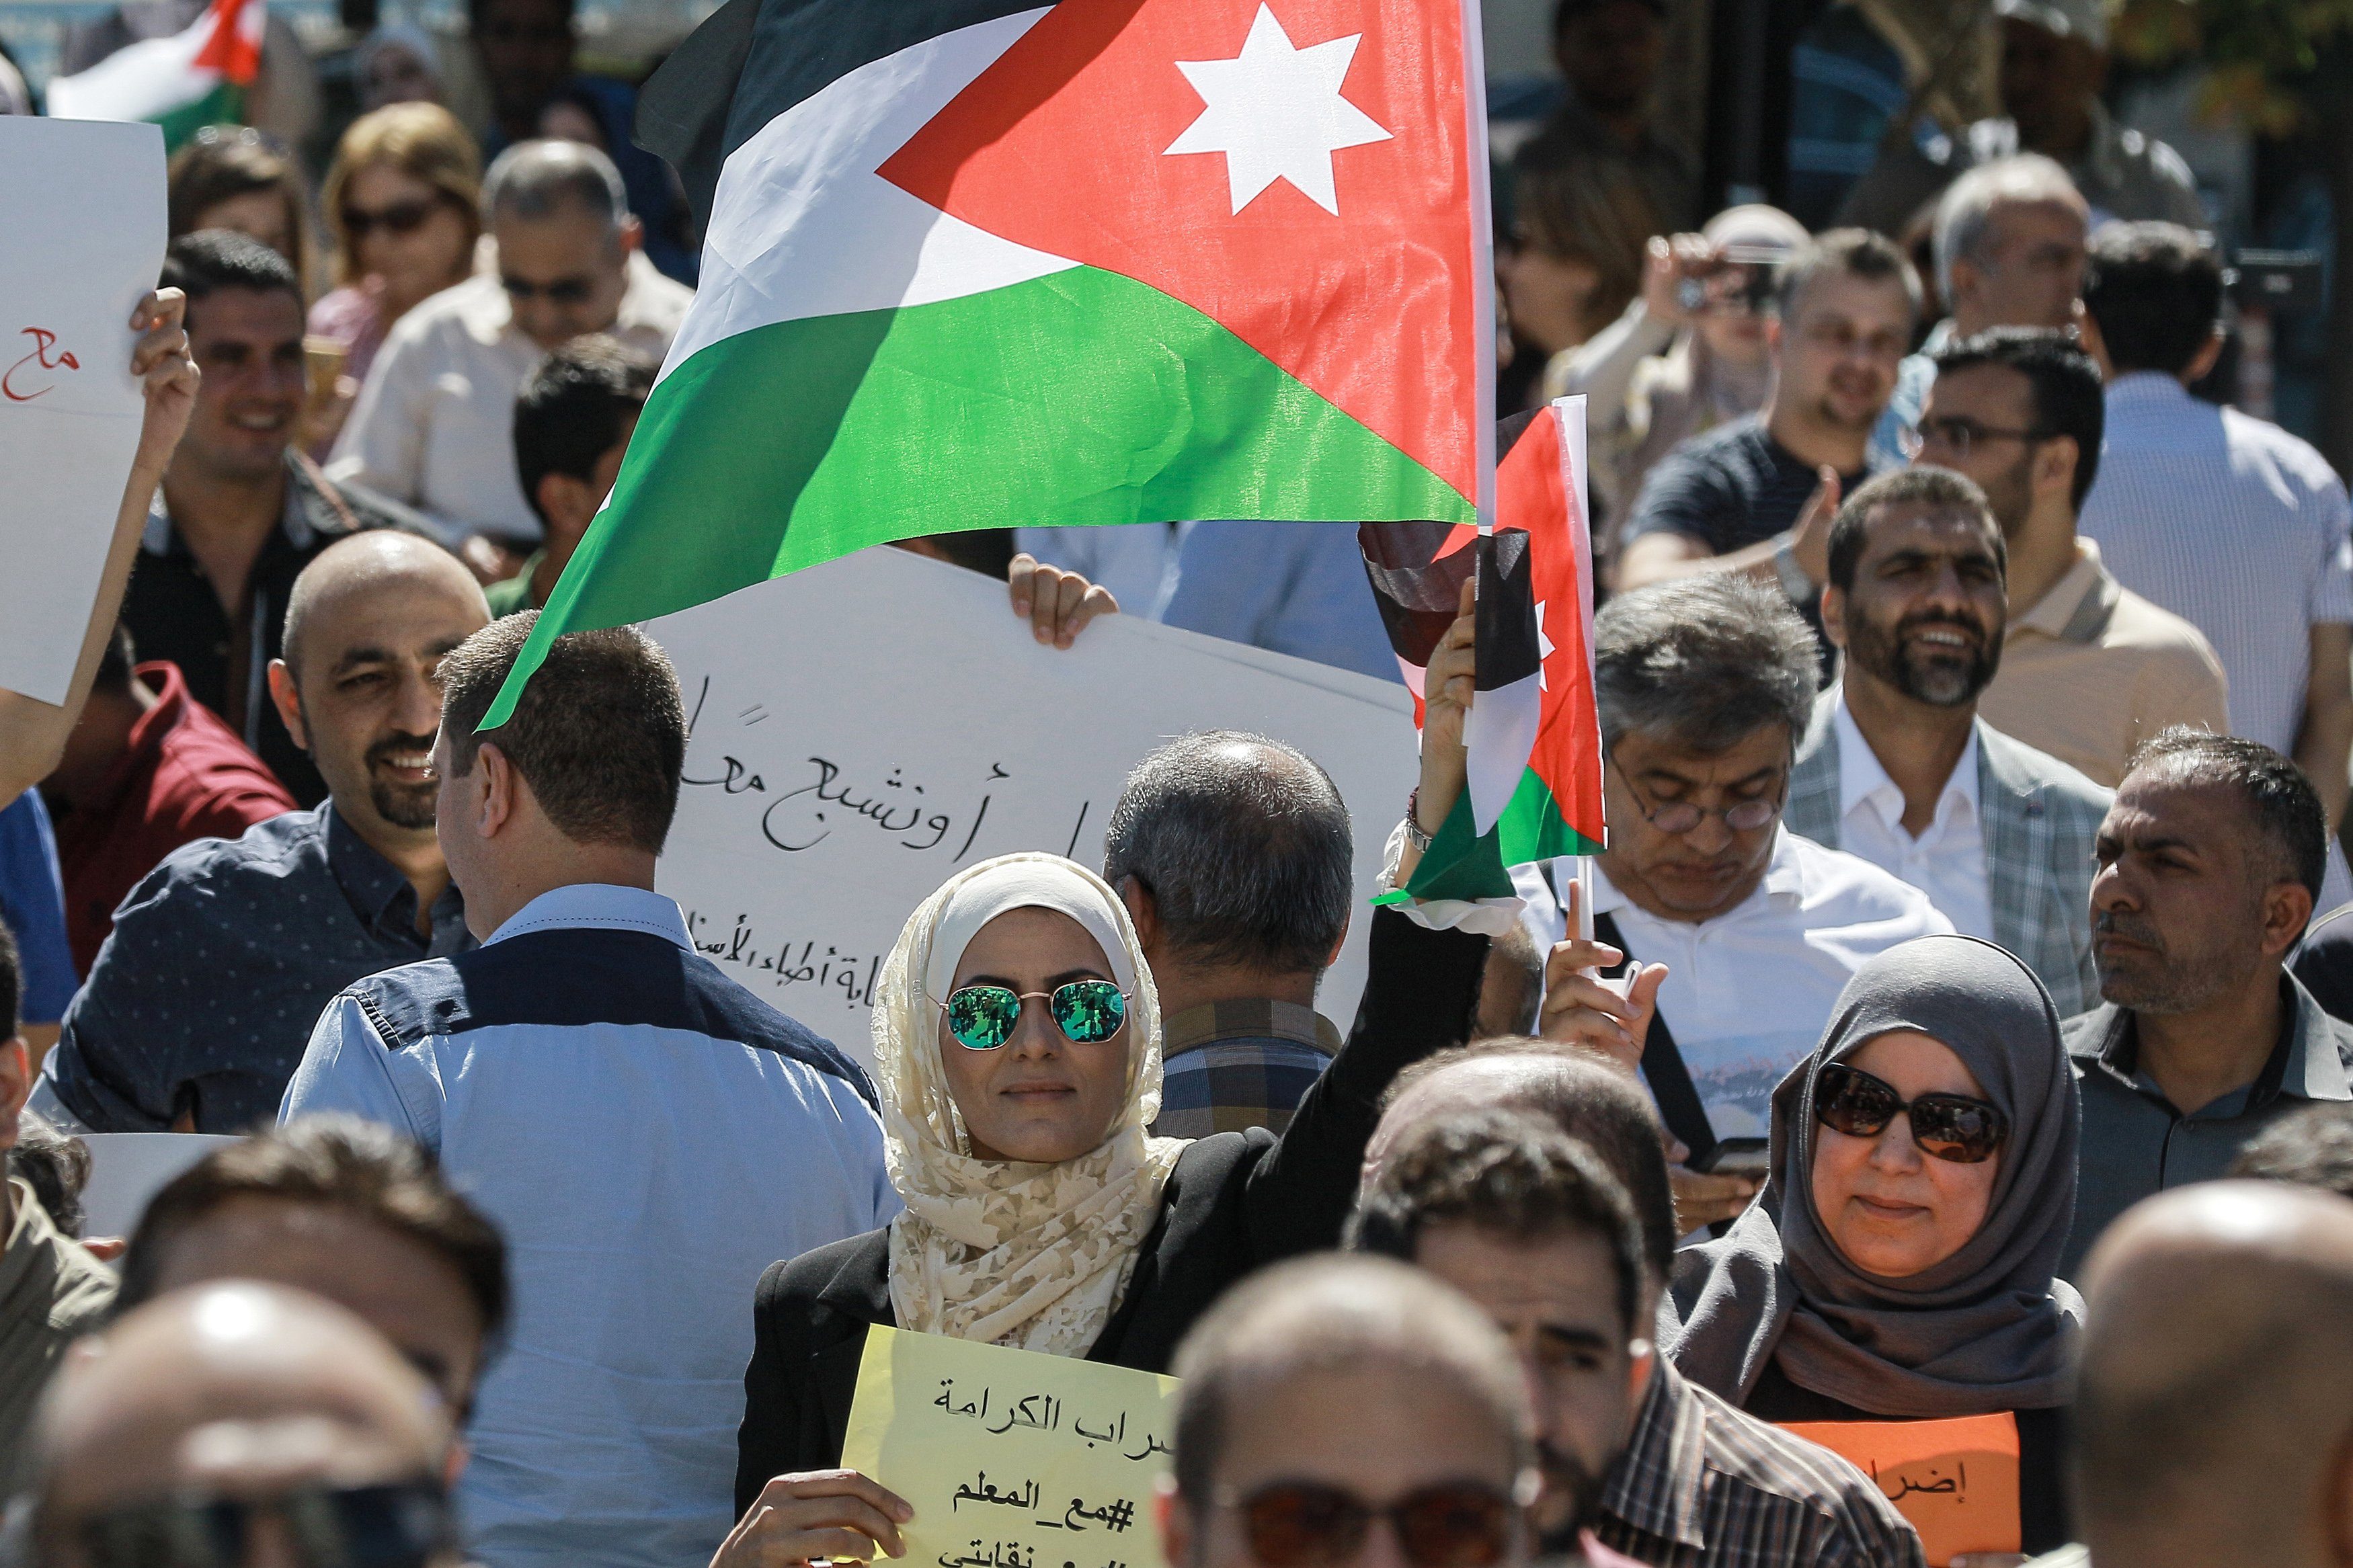 Jordan teachers' union threatens escalation after renewed tensions with government